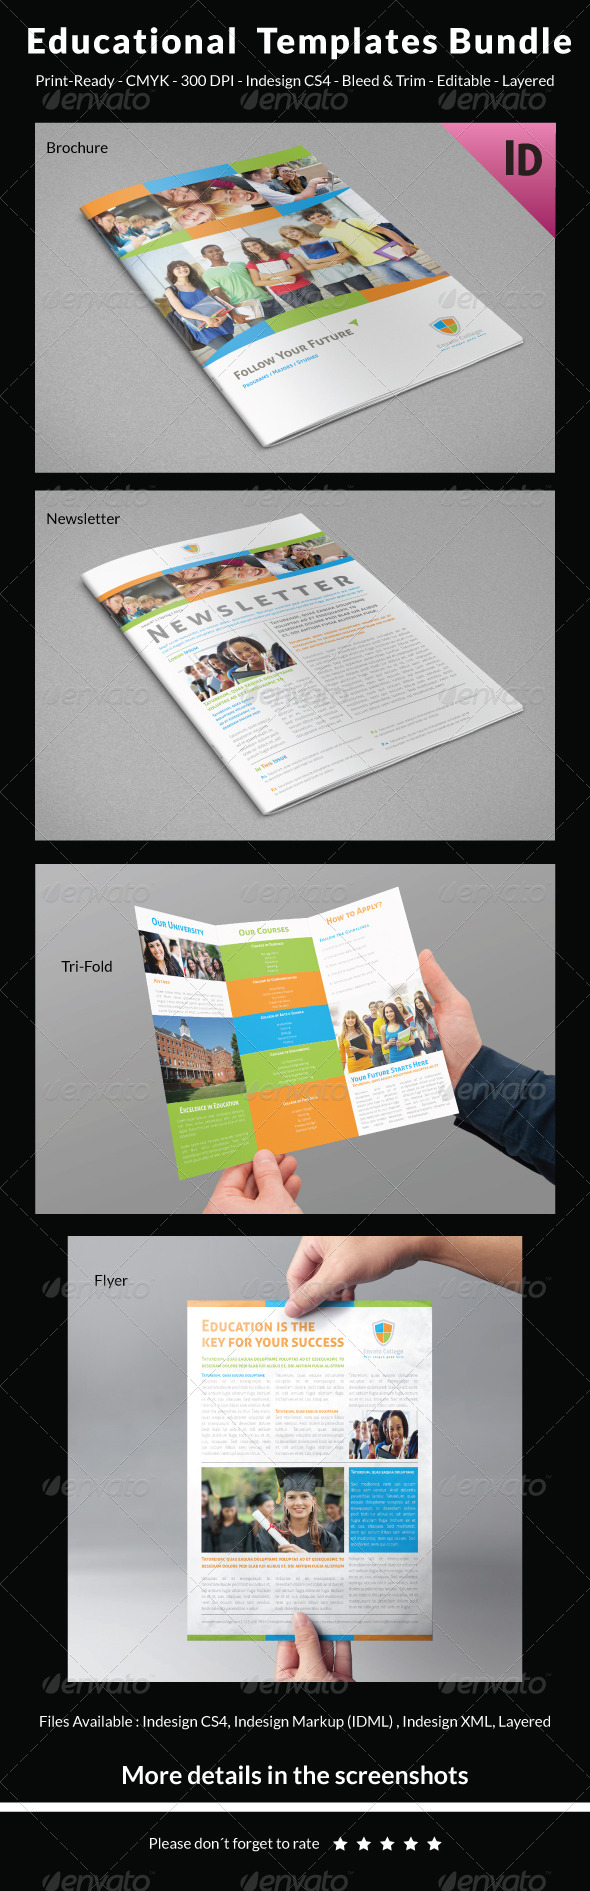 GraphicRiver Educational Templates Bundle 7748425